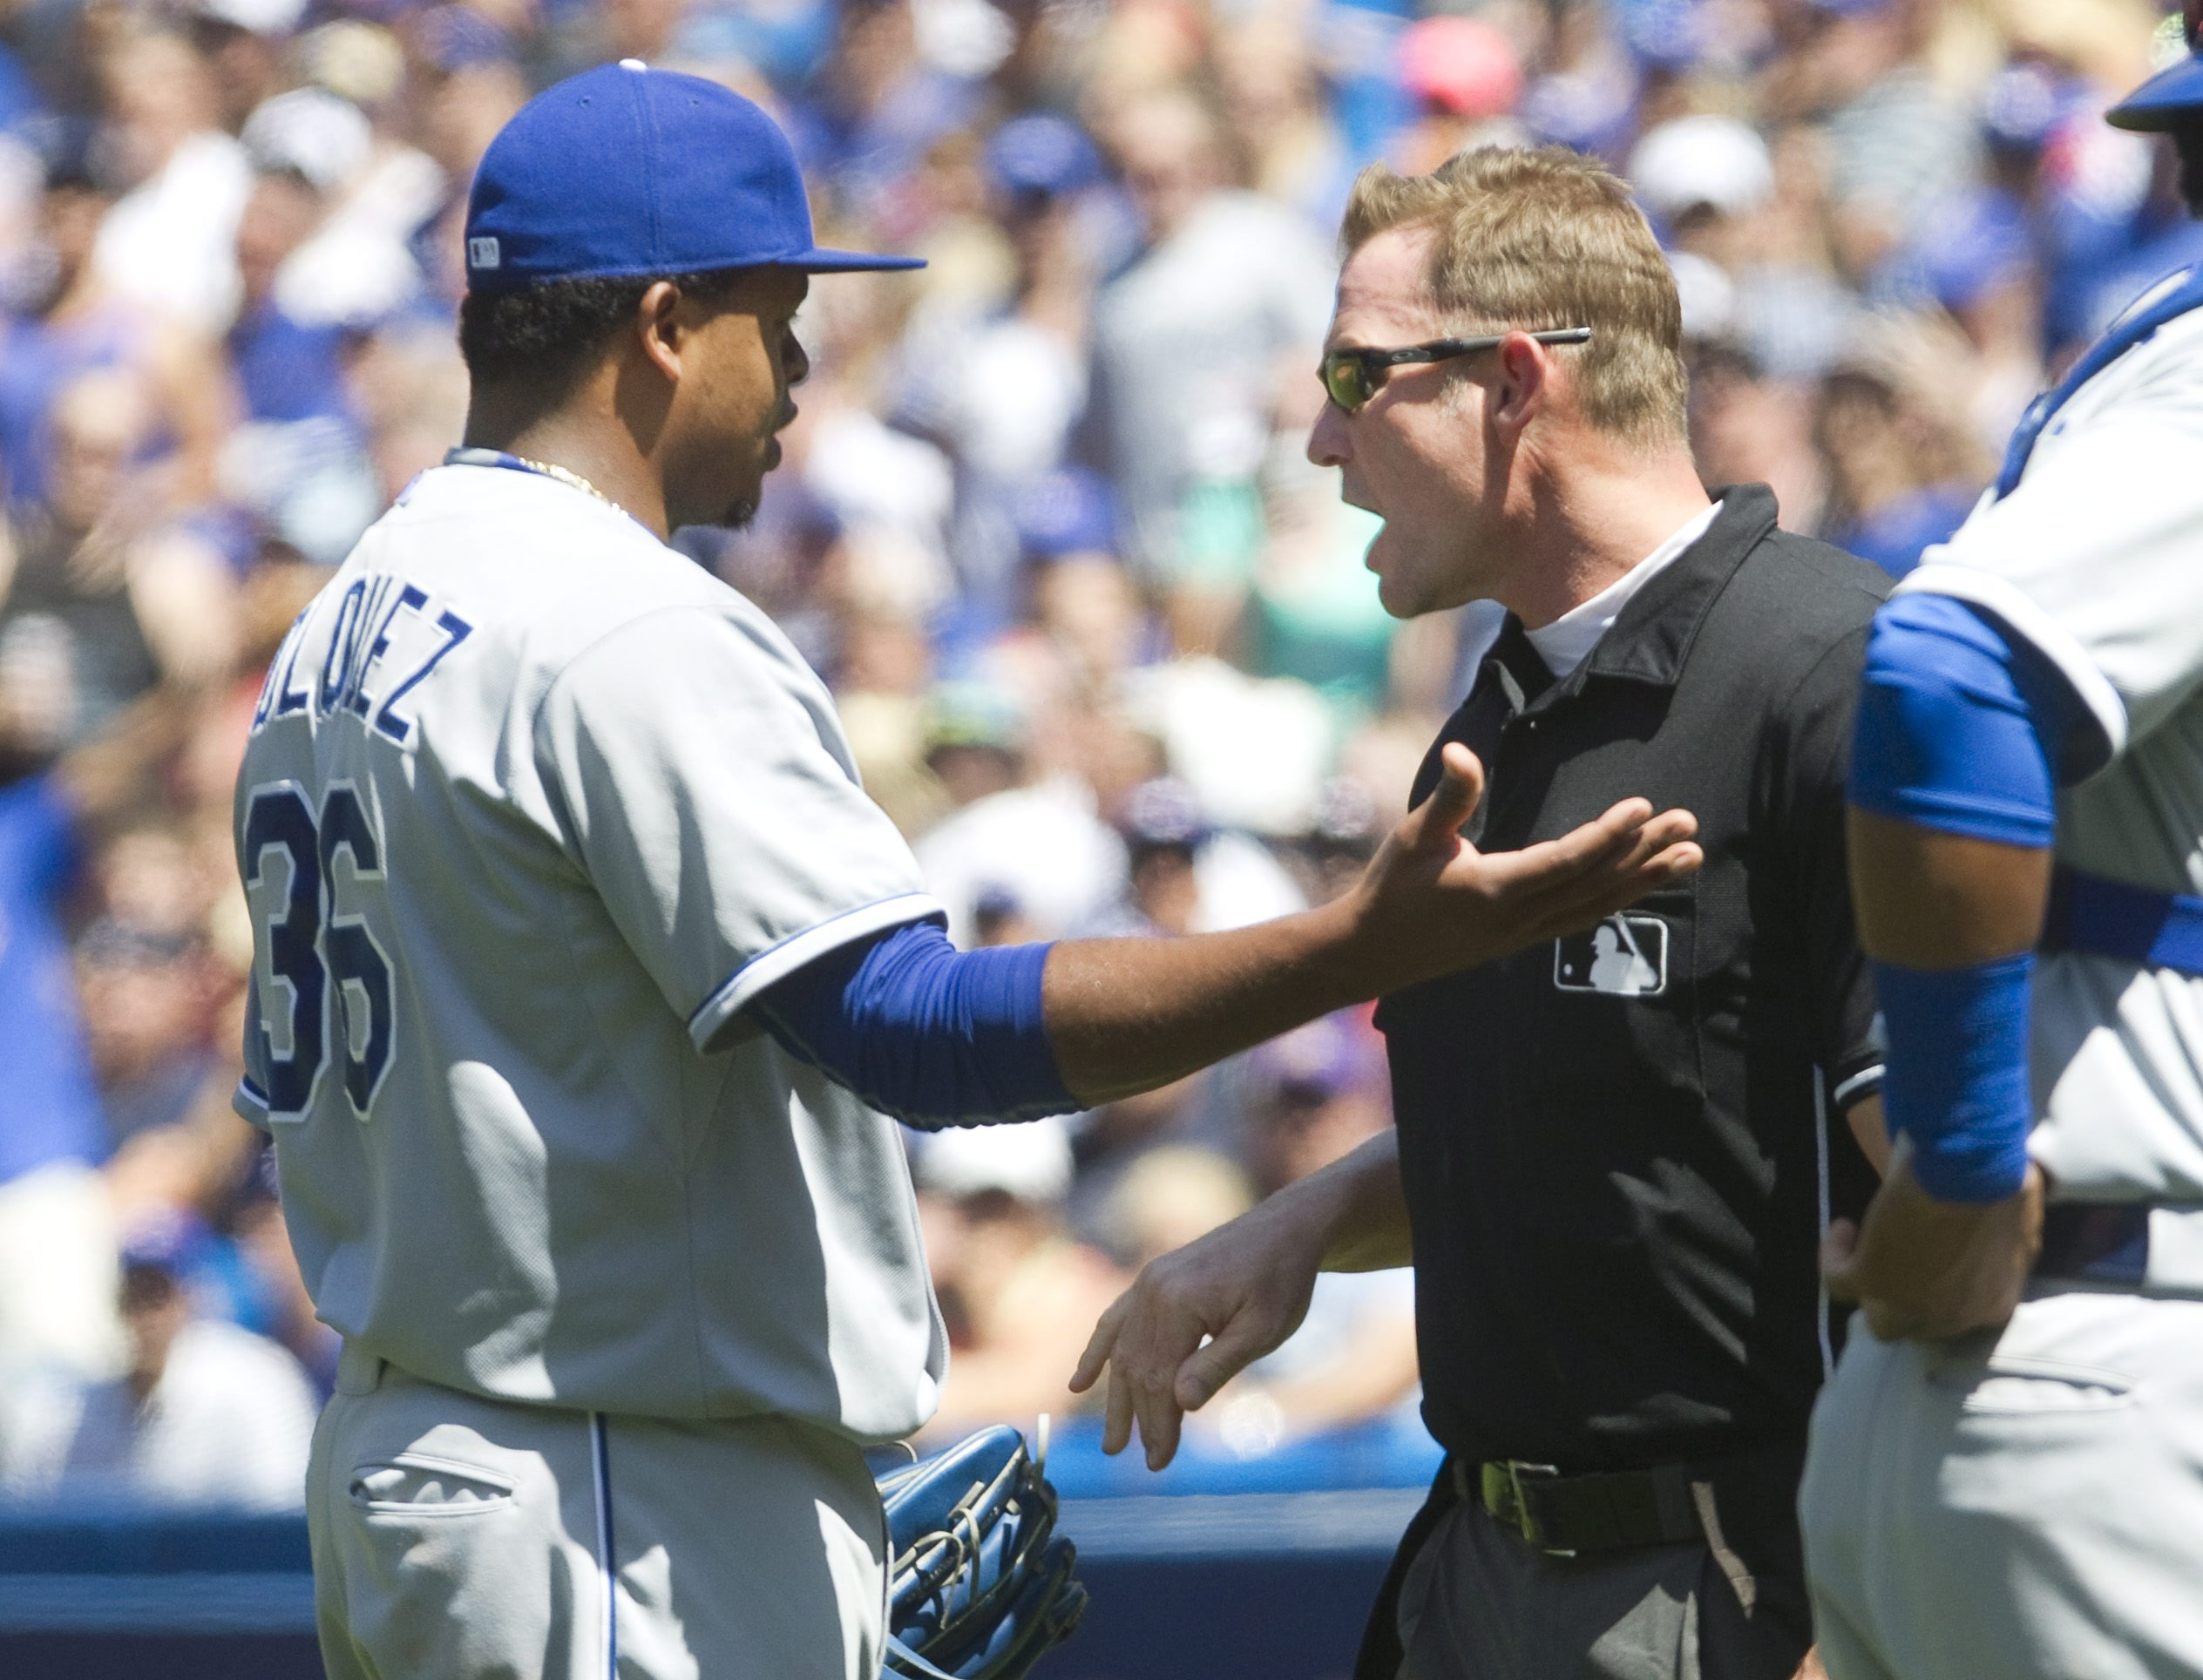 Kansas City Royals starting pitcher Edinson Volquez is given a warning by home plate umpire Jim Wolf after brushing Toronto Blue Jays' Josh Donaldson back with a pitch during the third inning of a baseball game against the Kansas City Royals in Toronto, S